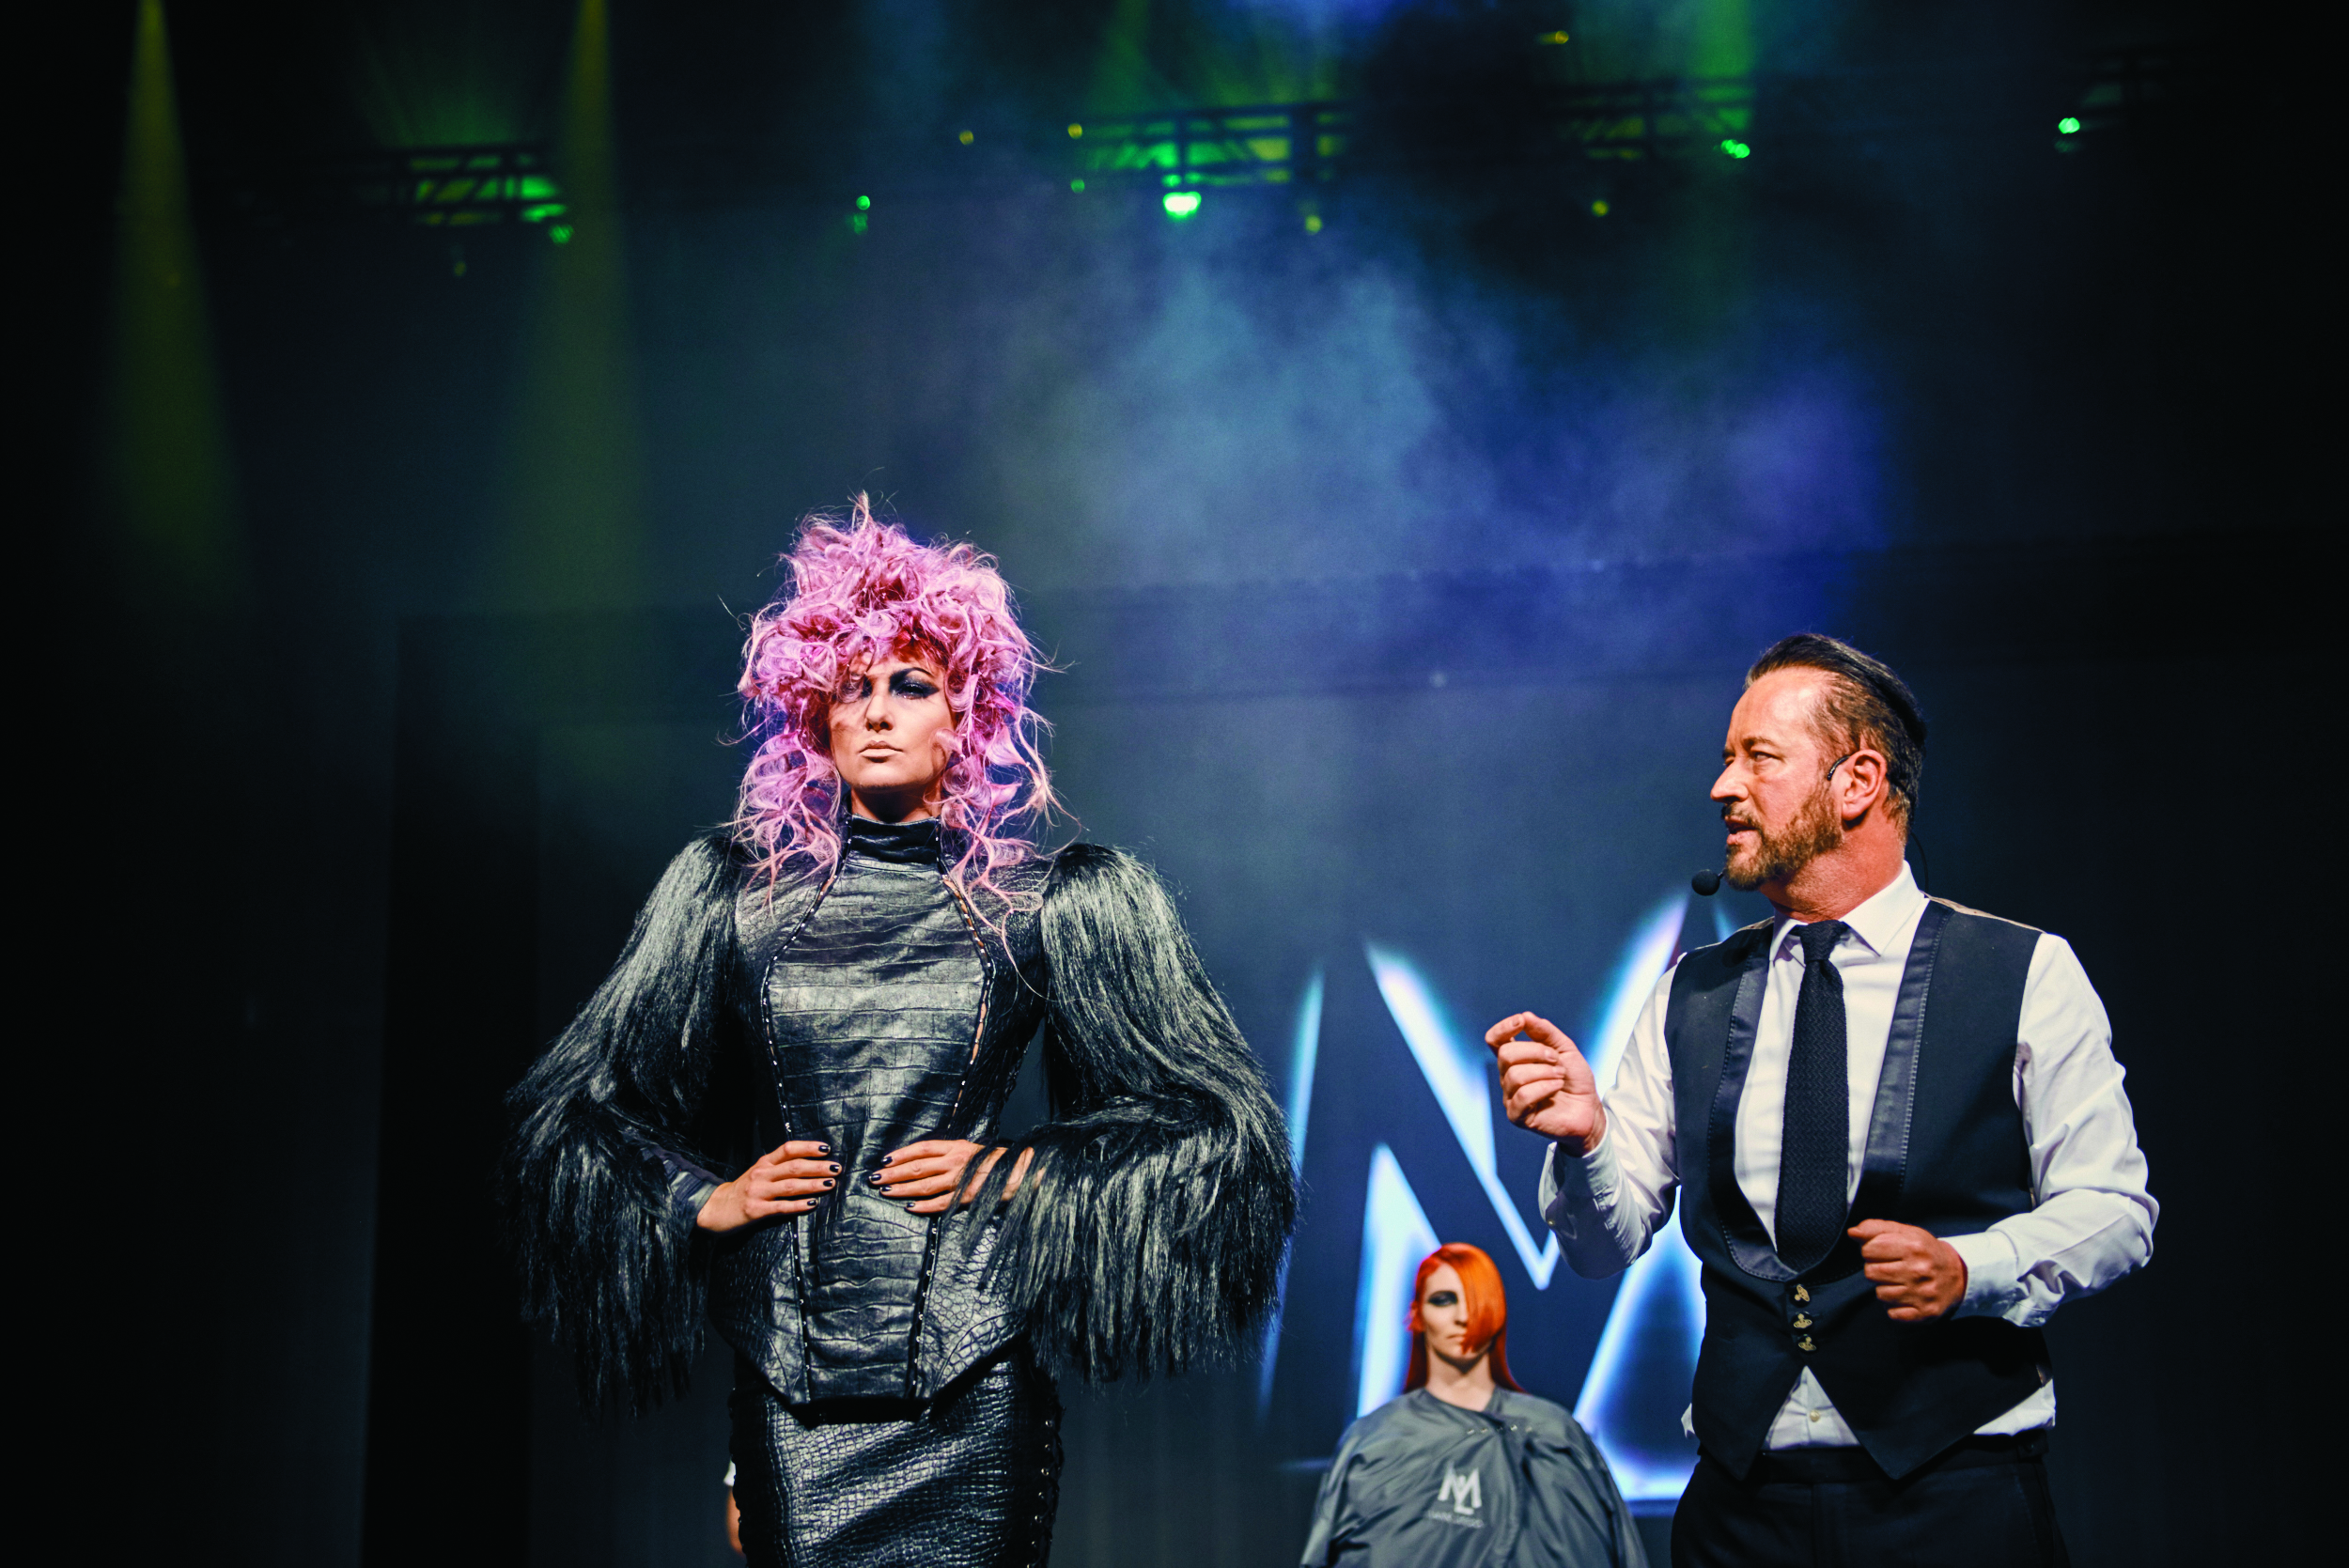 Mark Leeson, British Hairdresser of the Year and UK Hall of Fame member, presented a collection that featured couture clothing, world-class hair color and editorial styling.